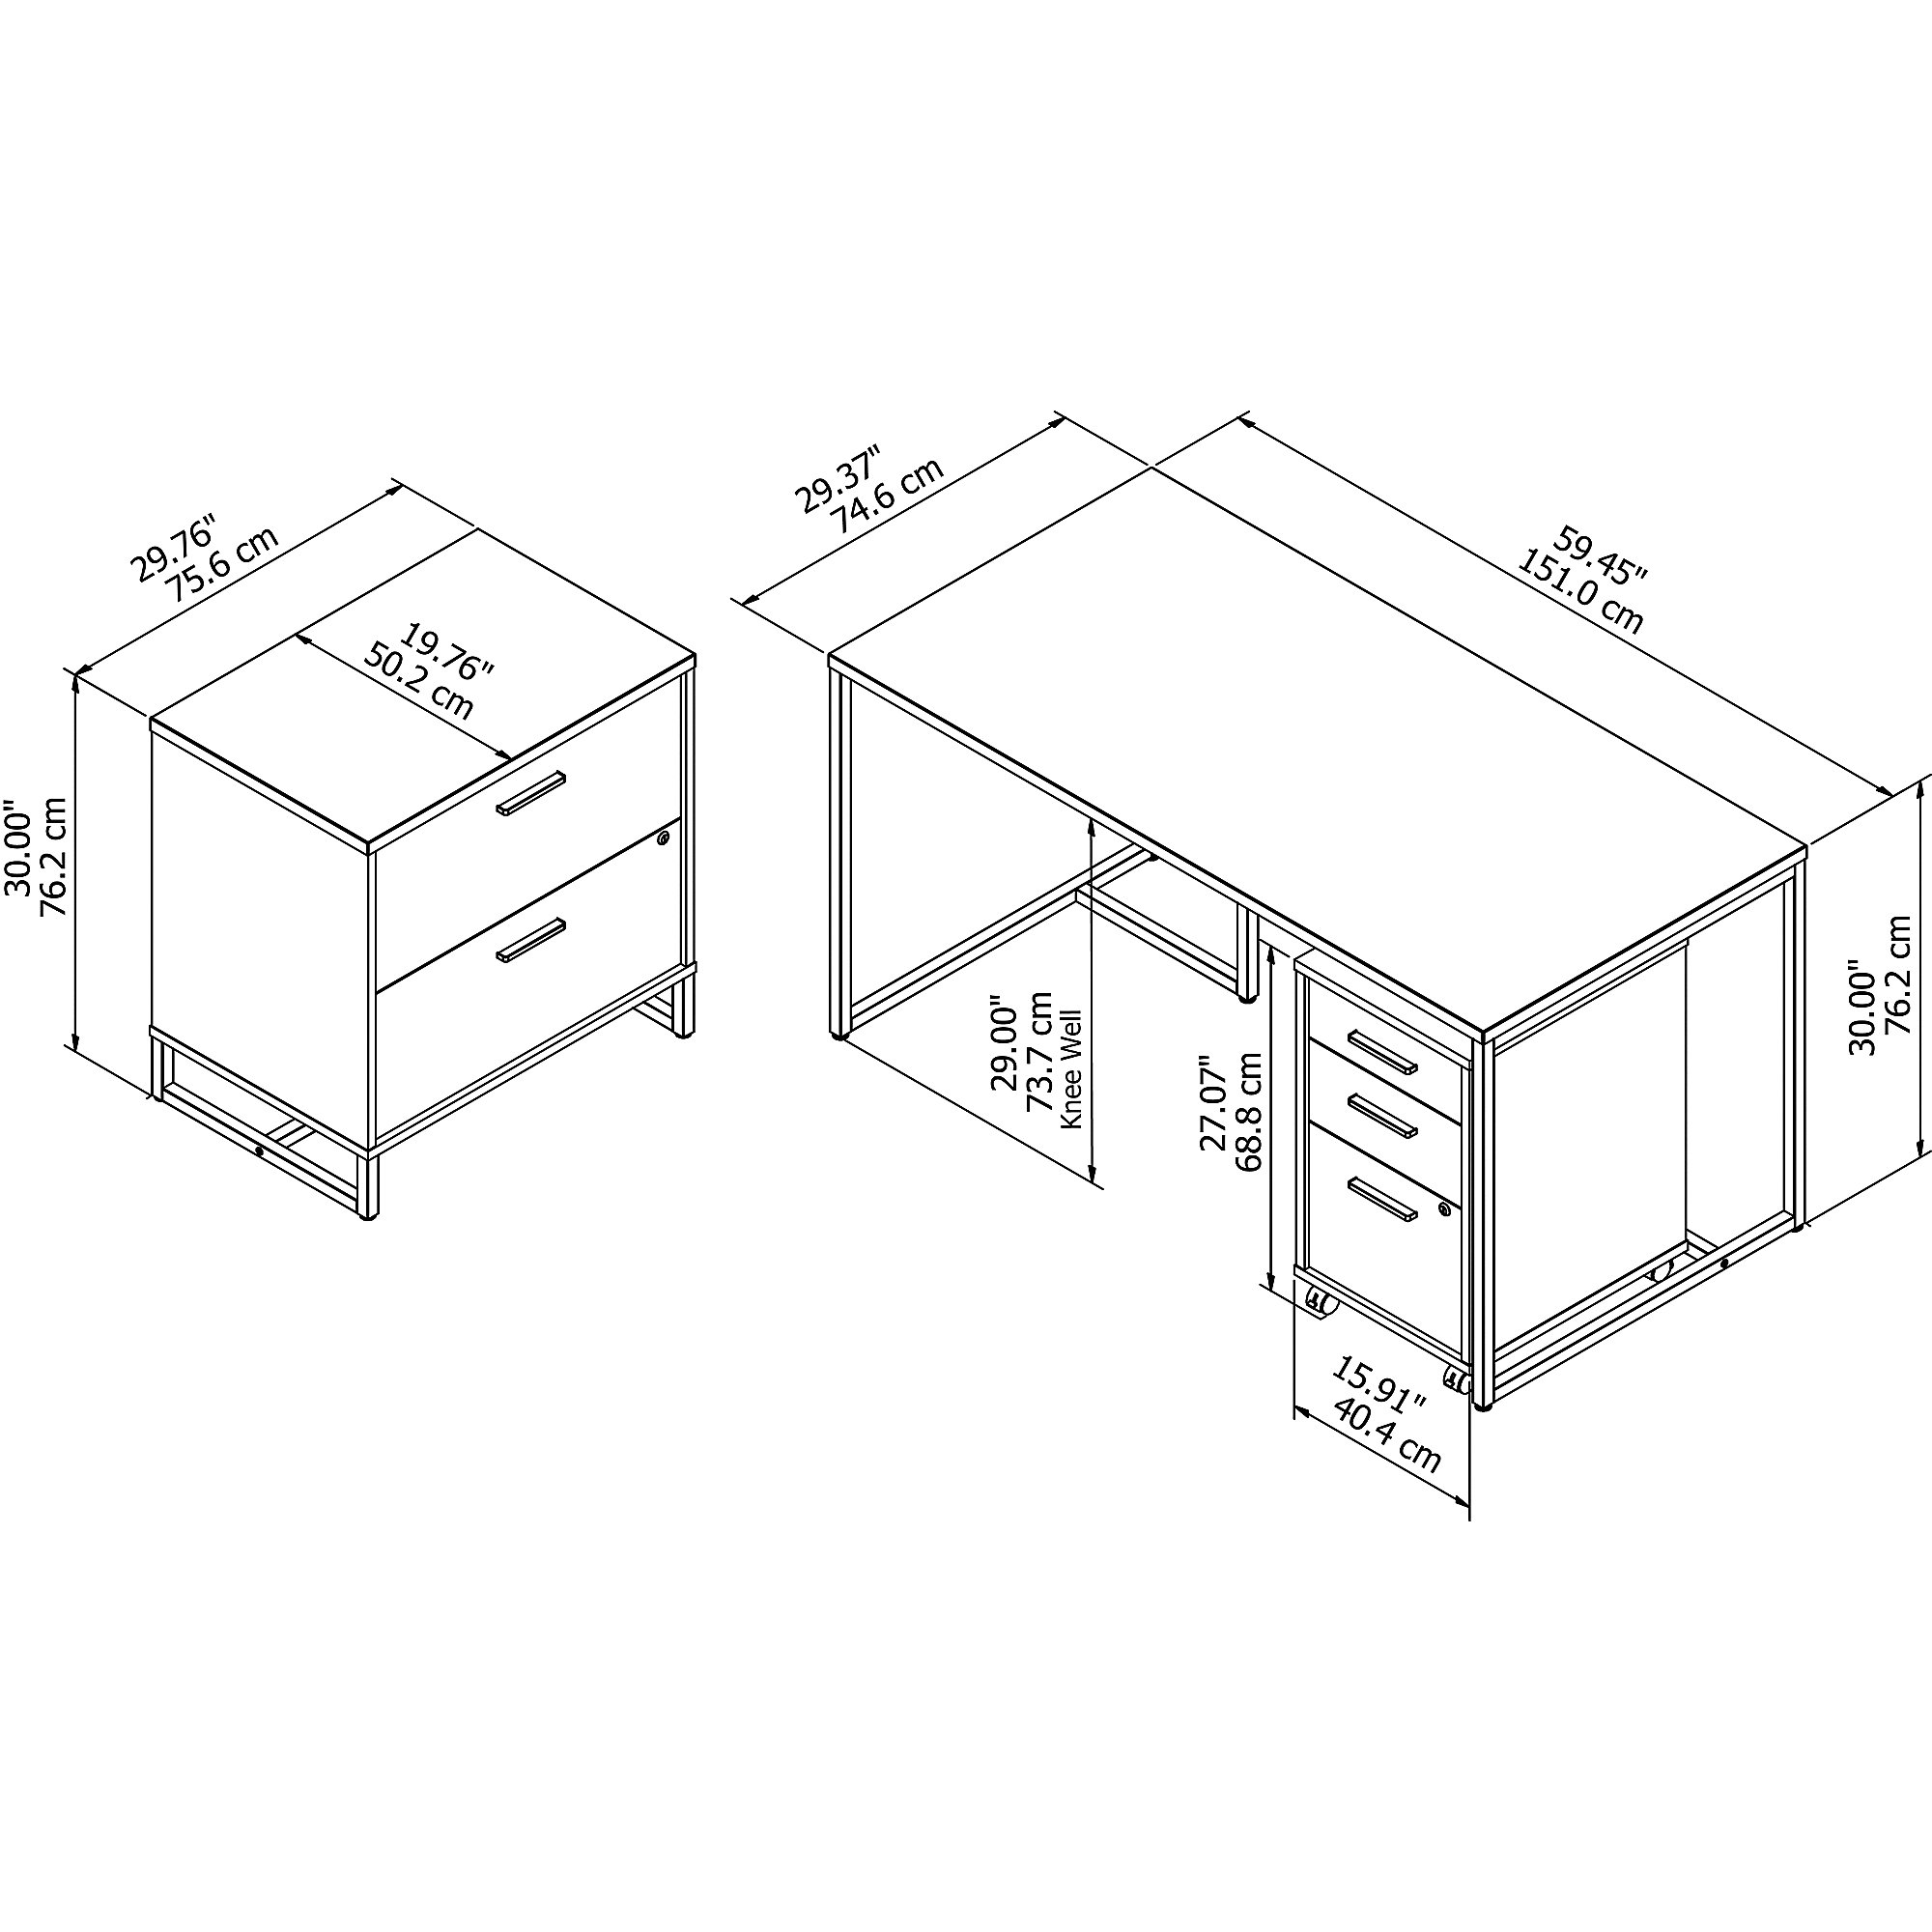 method writing desk with file cabinets dimensions